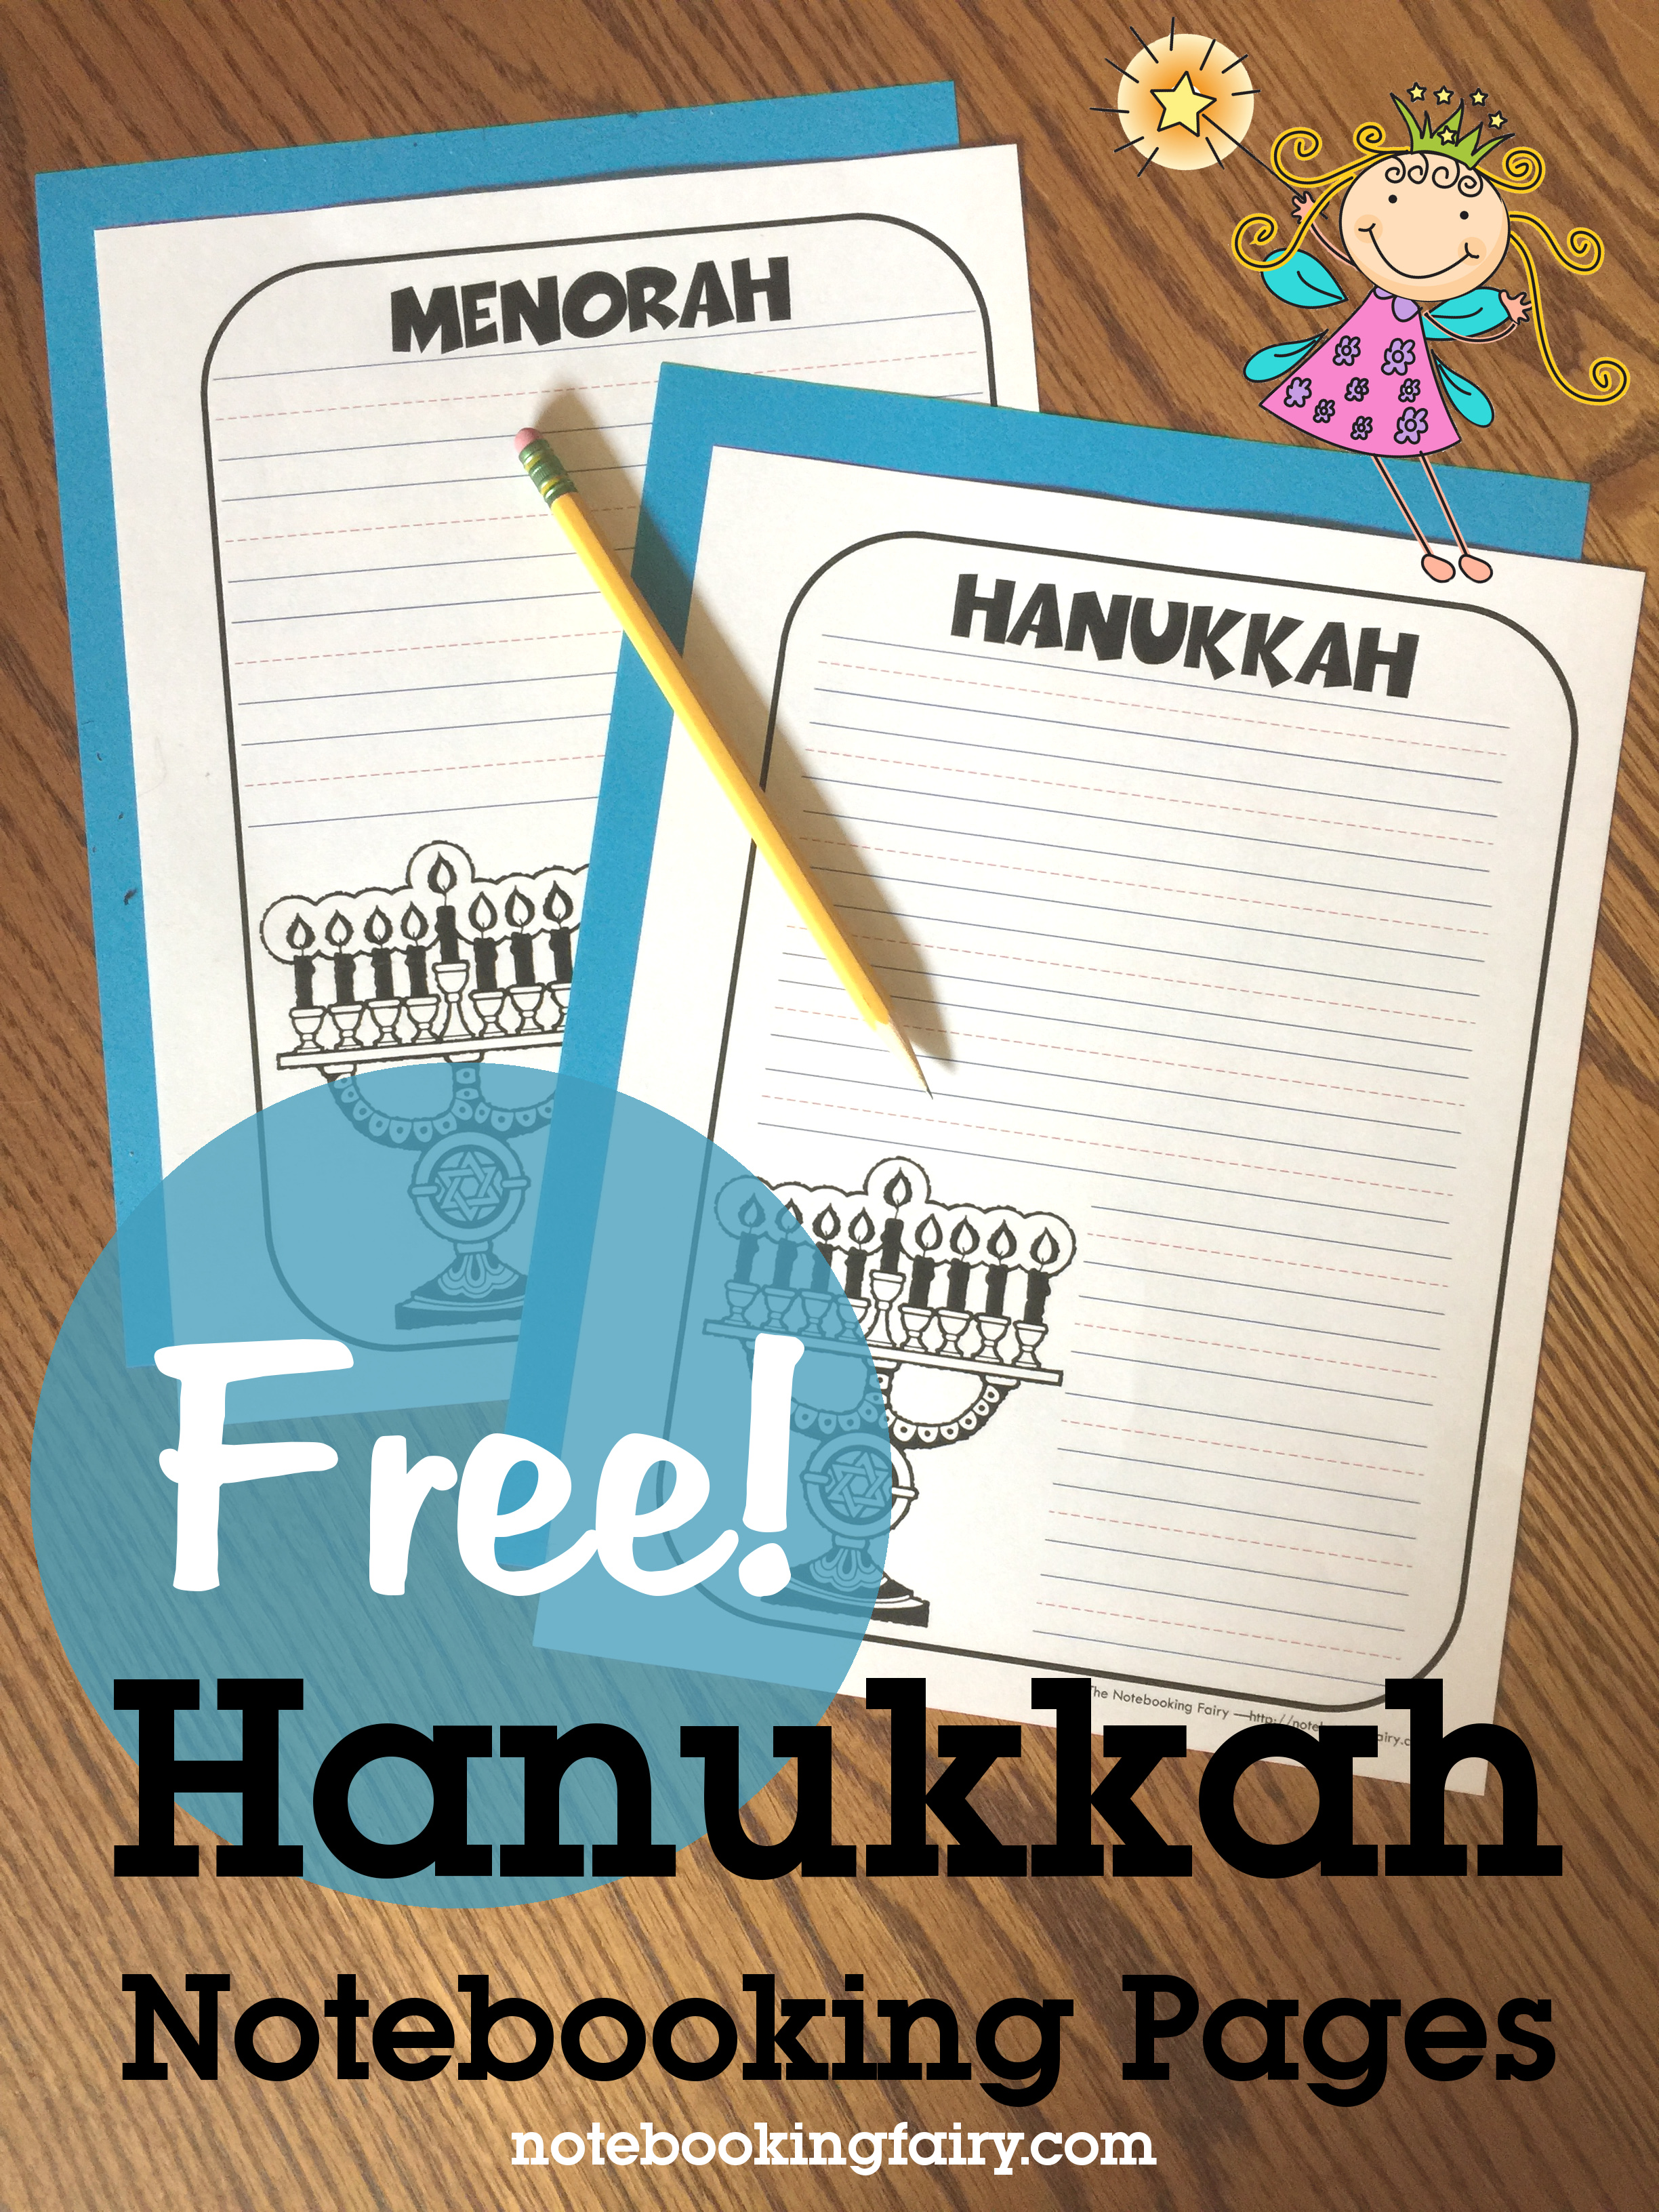 Chanukah (Hanukkah) Notebooking Pages for Homeschool • free from The Notebooking Fairy